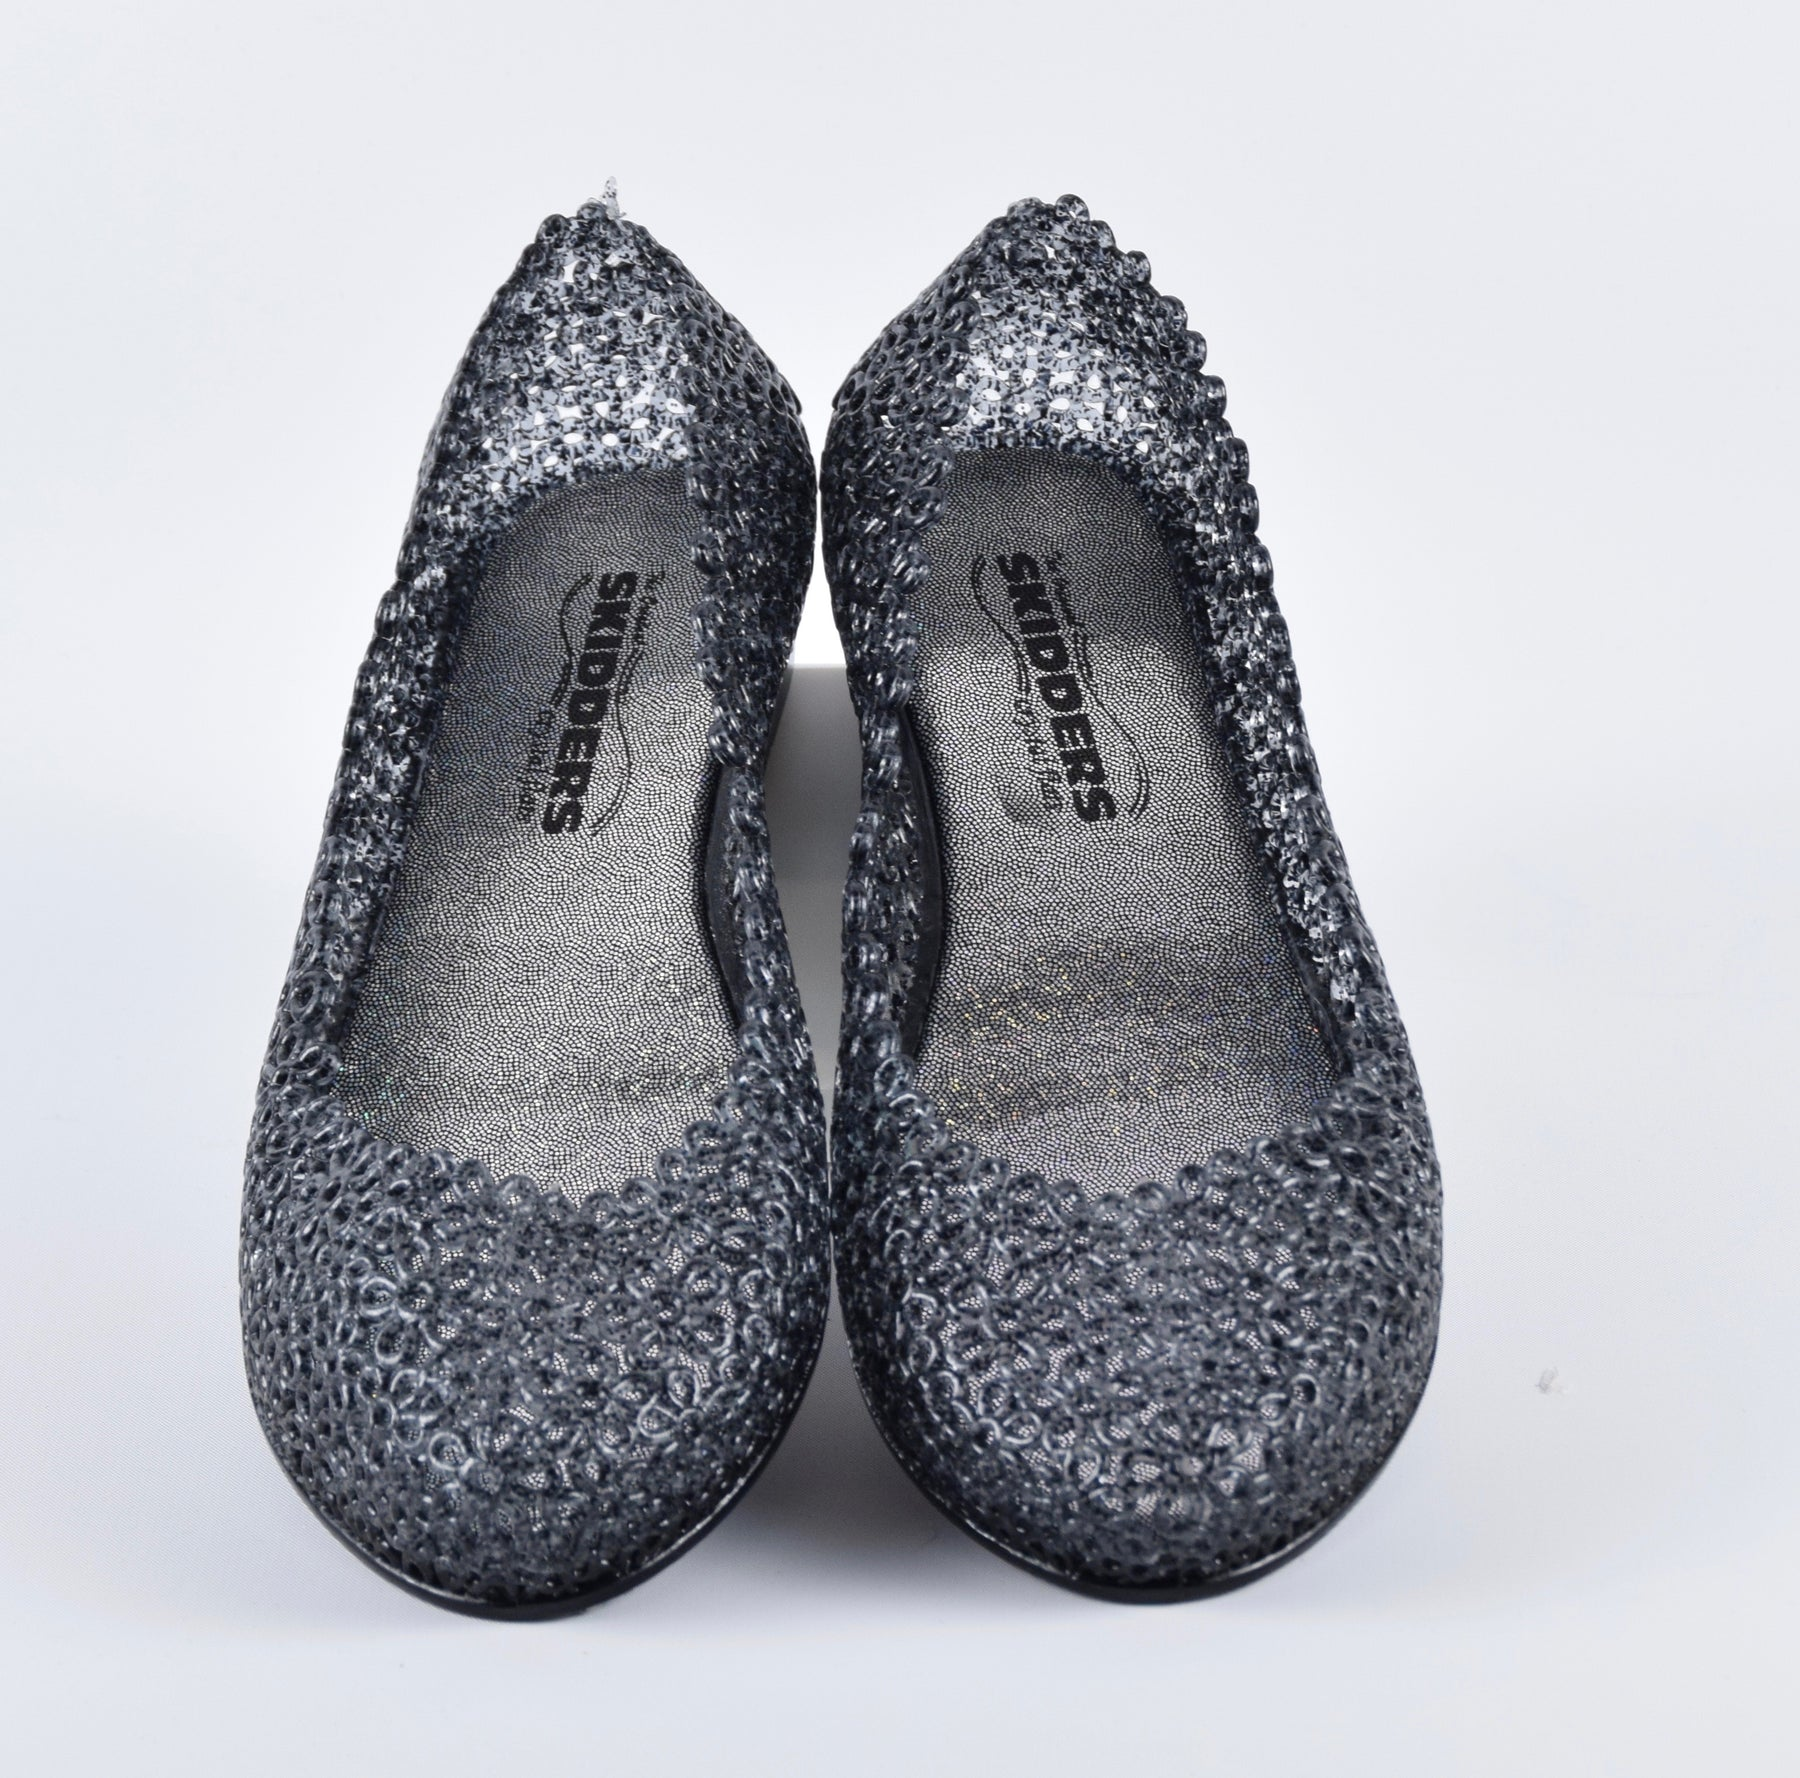 664bfa906d0e Share Share on Facebook. SKIDDERS The Original Womens Glitter Crystal  Ballet Flat Jelly Shoes Black